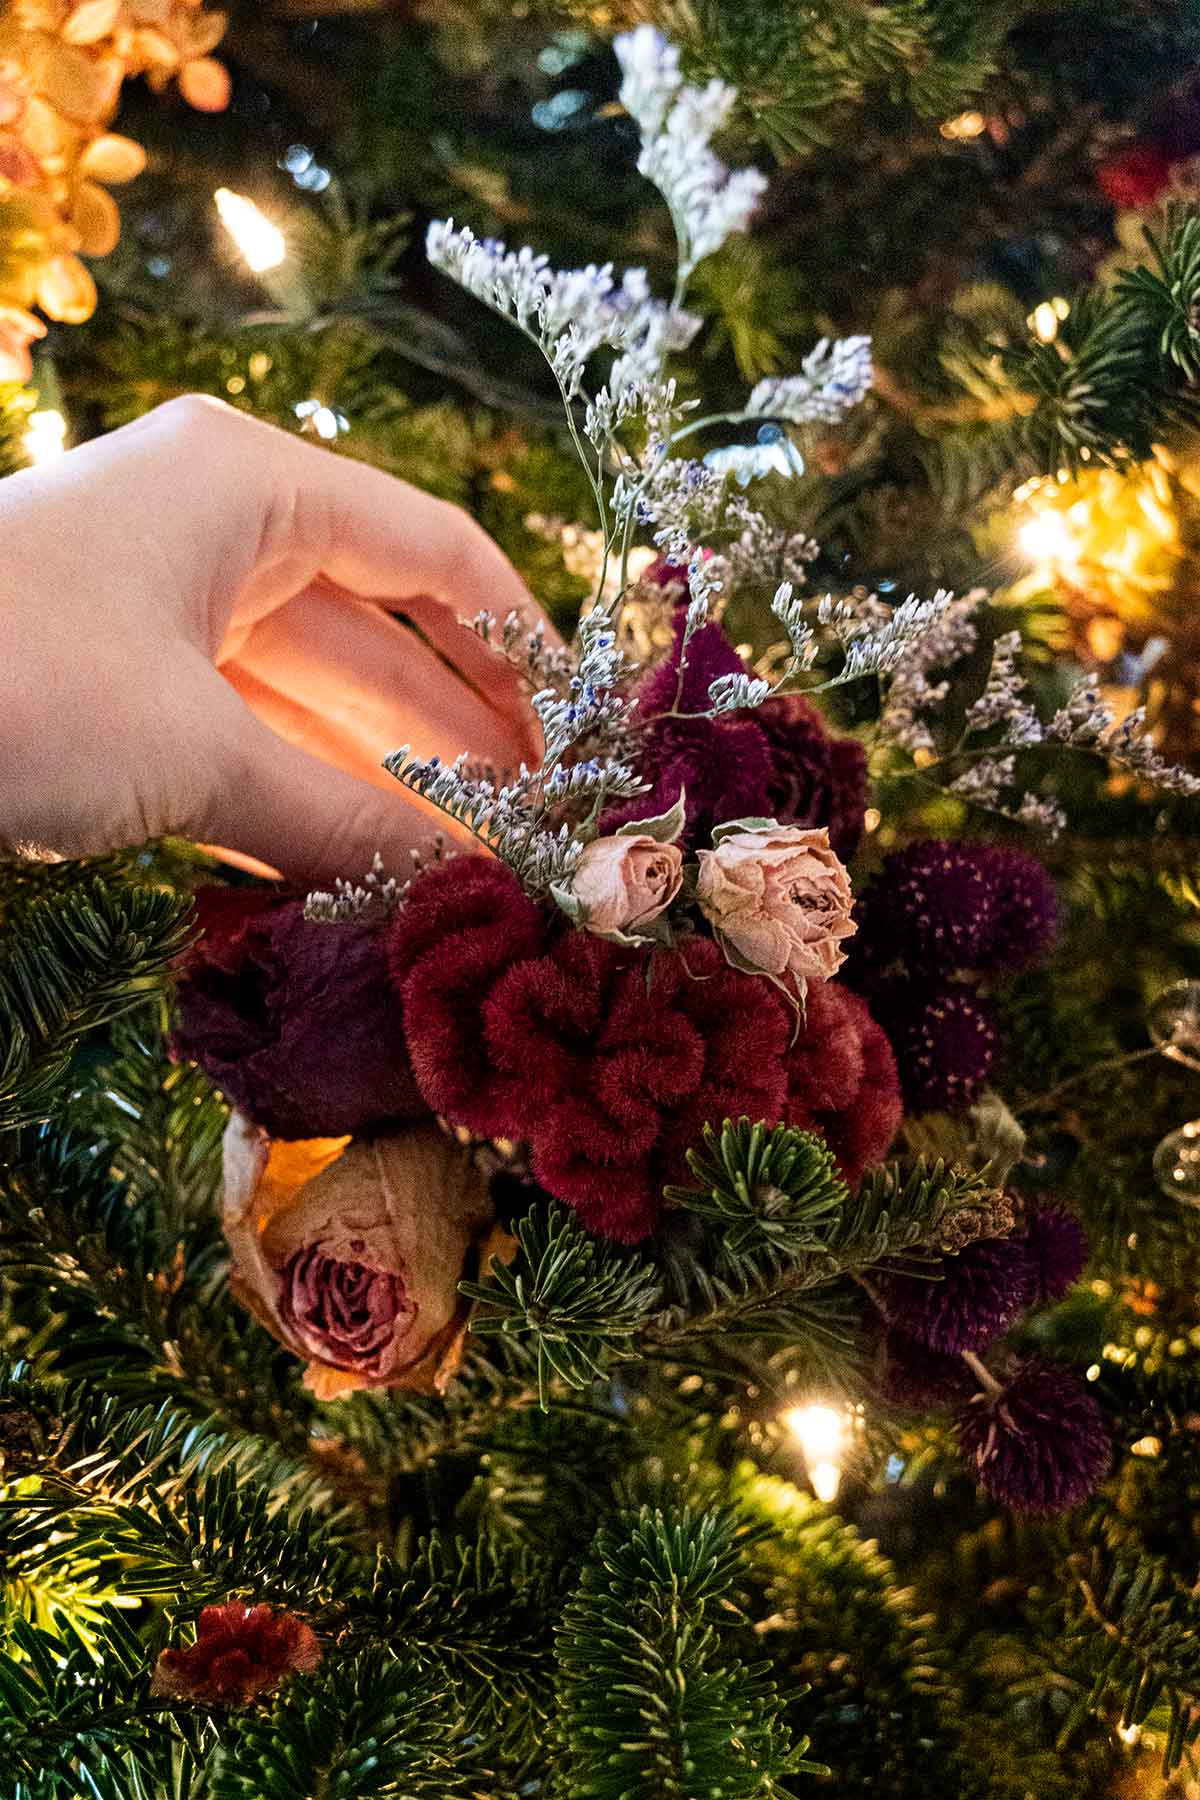 A hand placing a flower bouquet on a Christmas tree.